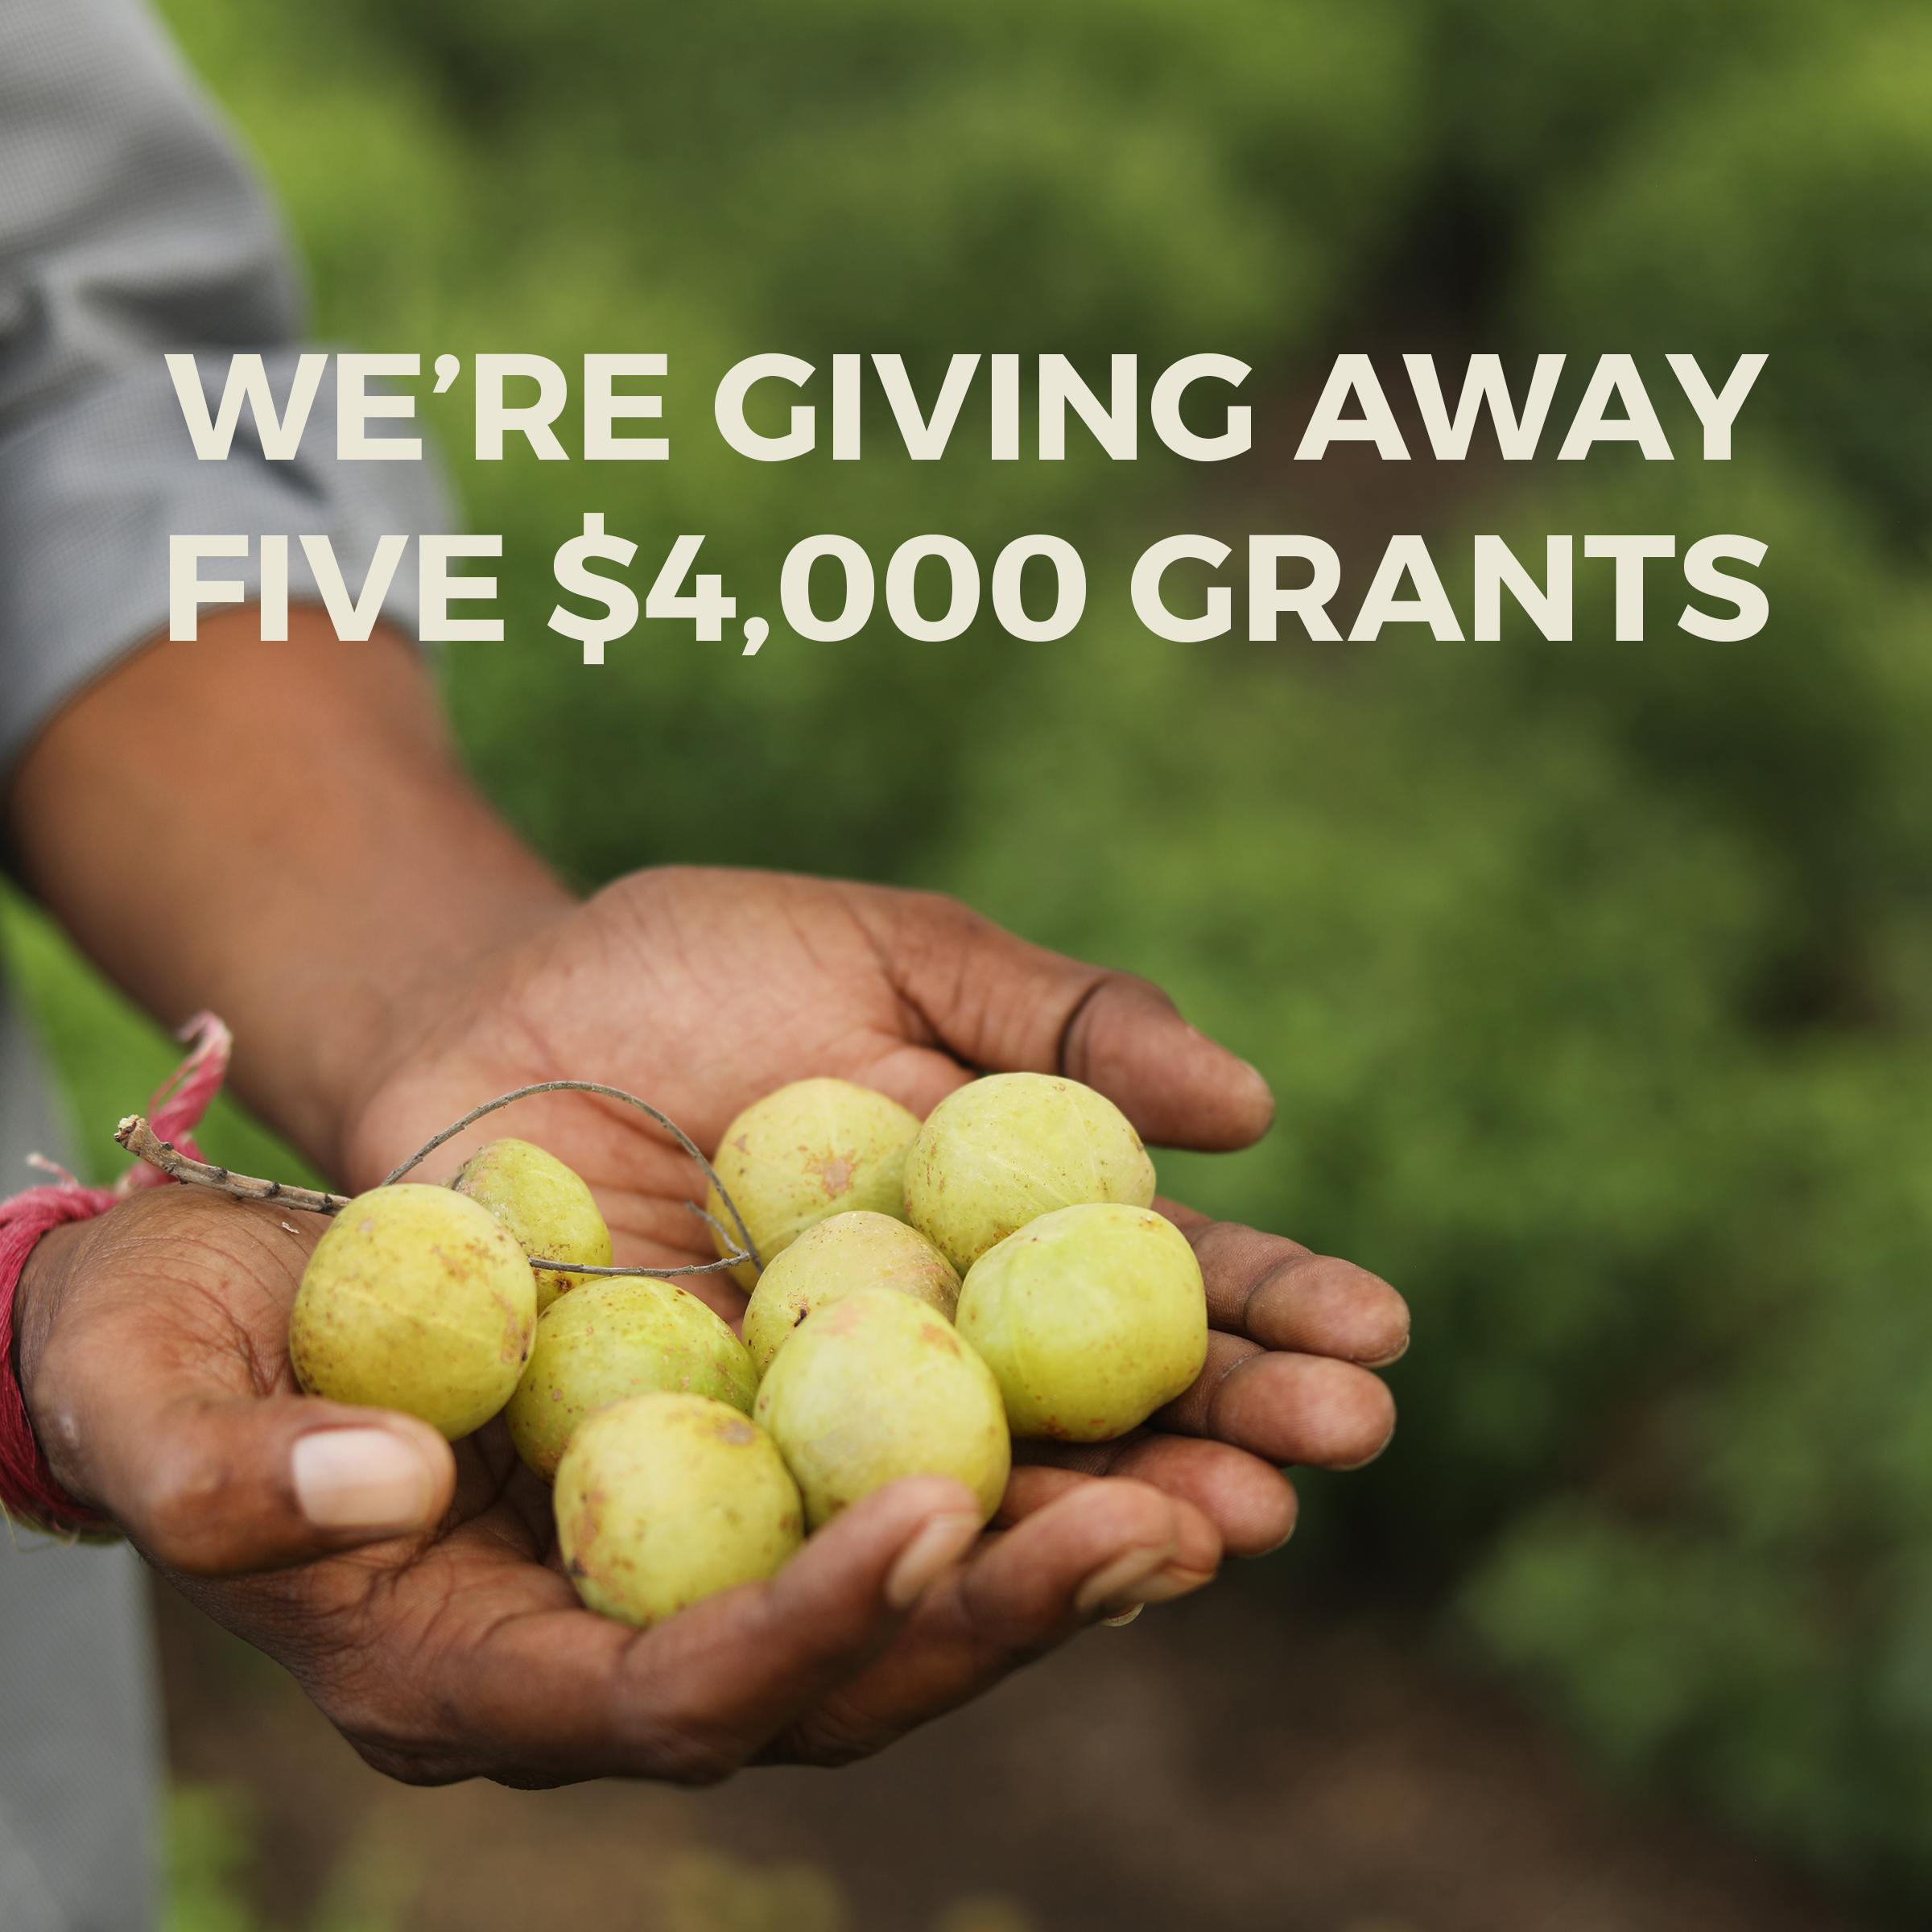 We're Giving Away Five $4,000 Grants!